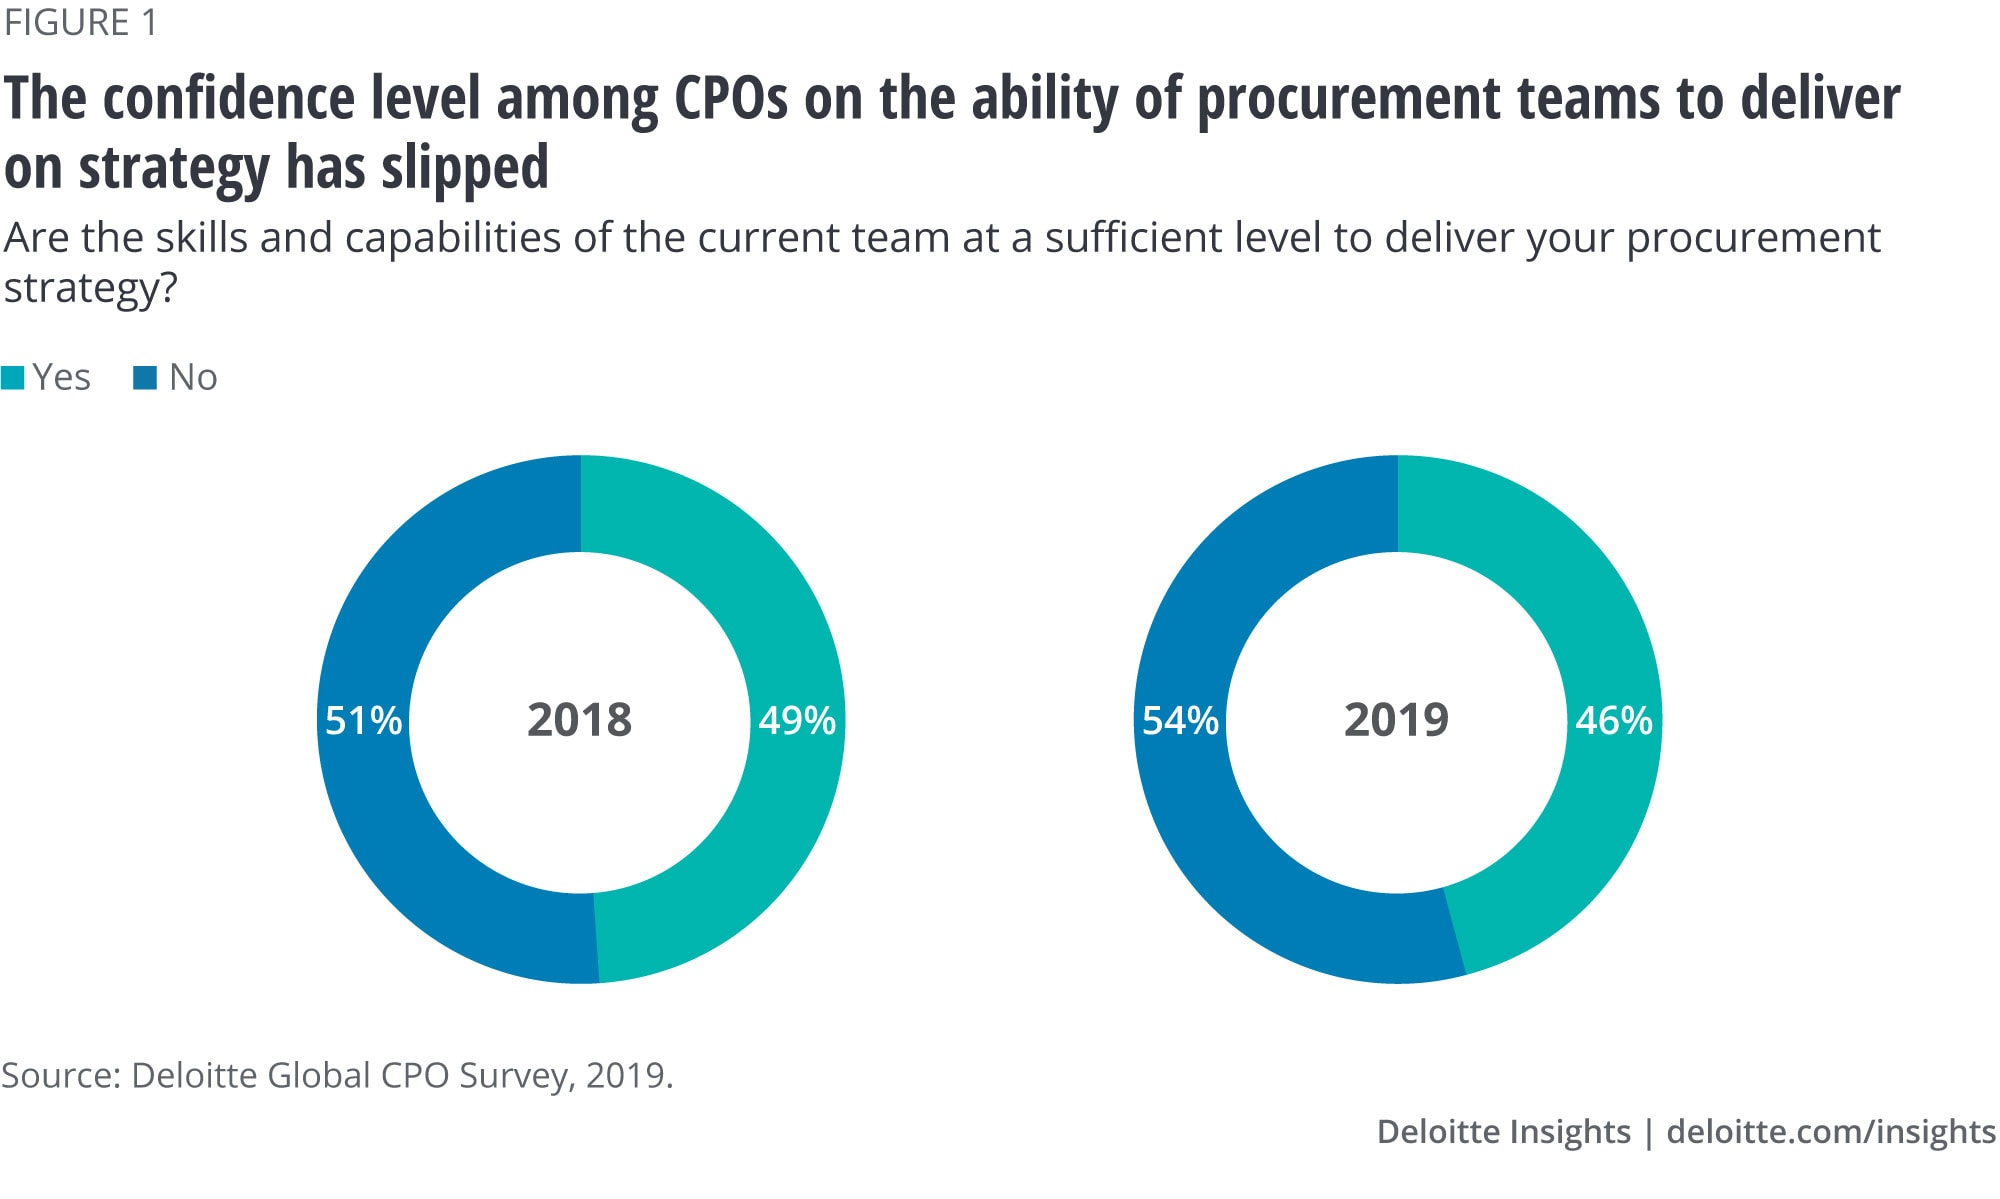 The confidence level among CPOs on the ability of procurement teams to deliver on strategy has slipped